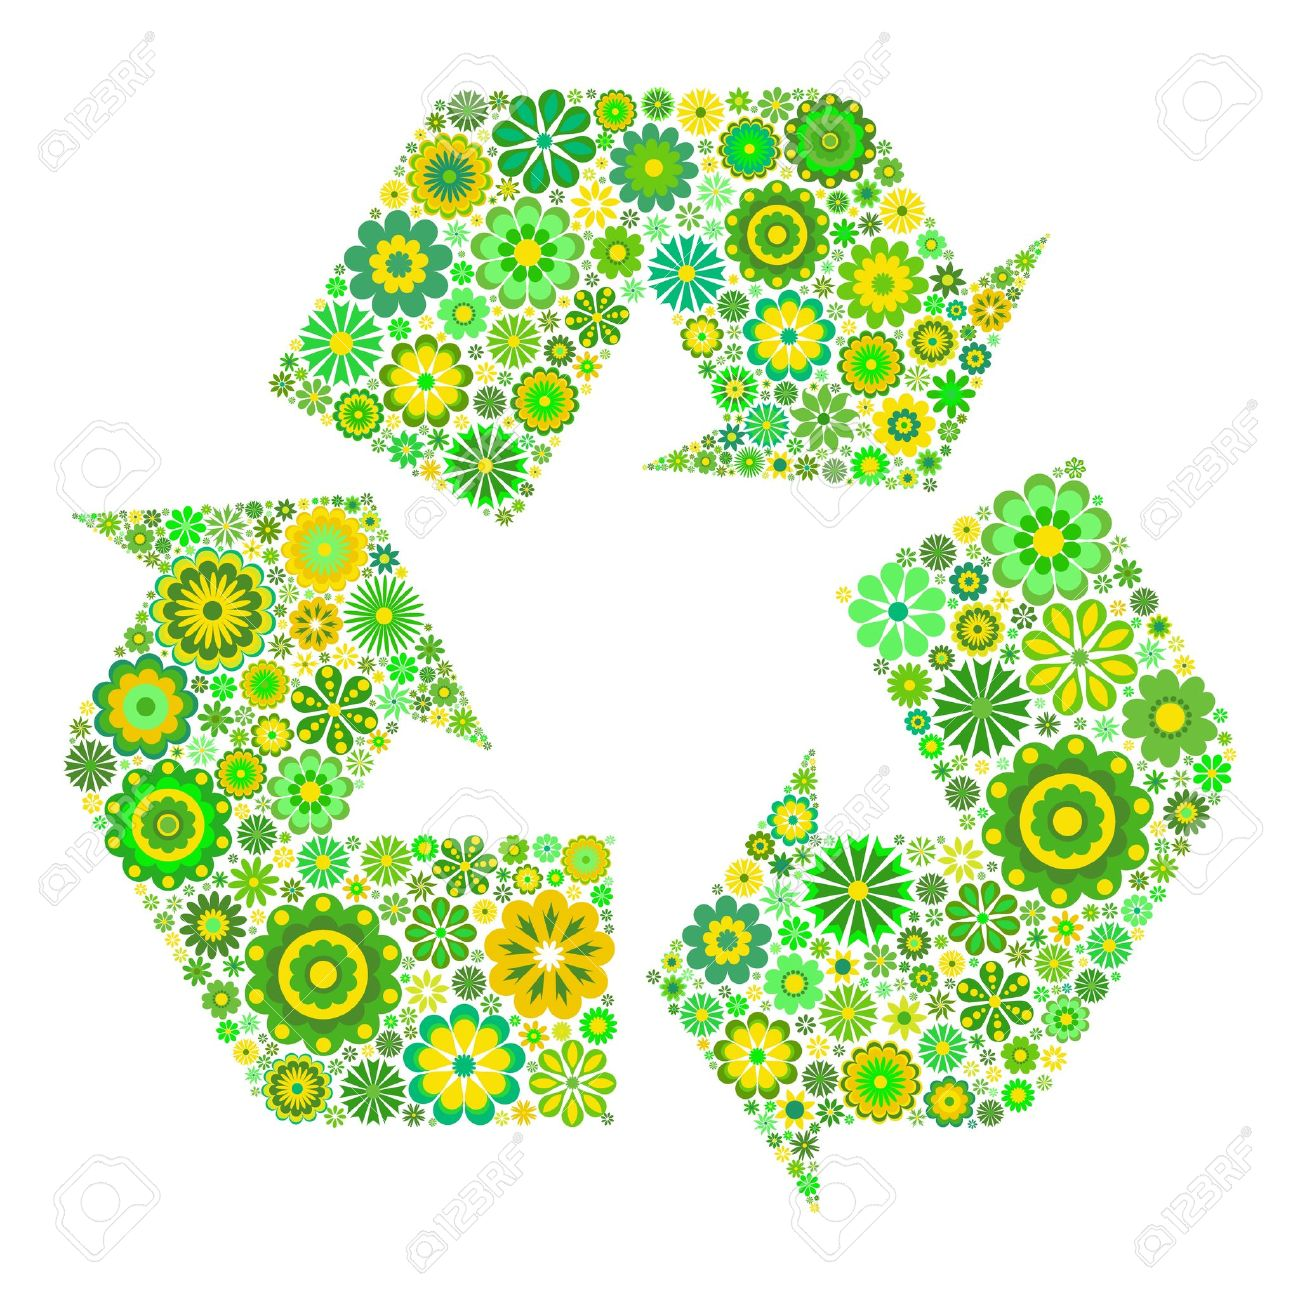 Cool Recycle Logo Flowery recycling symbol